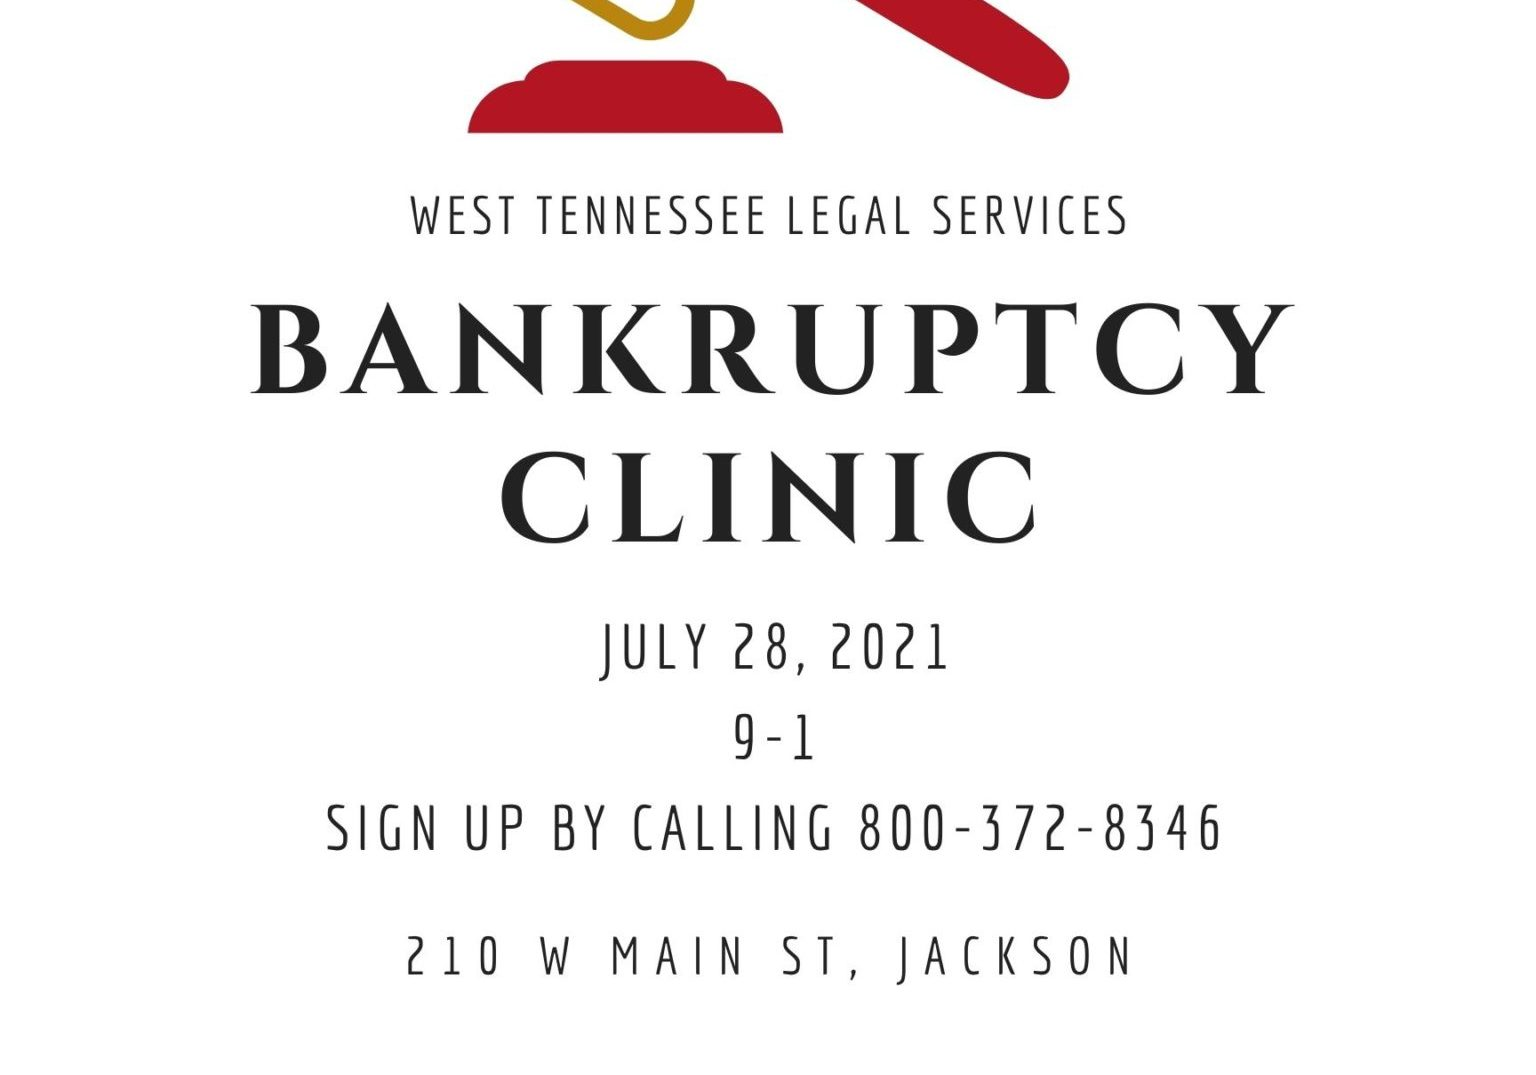 West Tennessee Legal Services